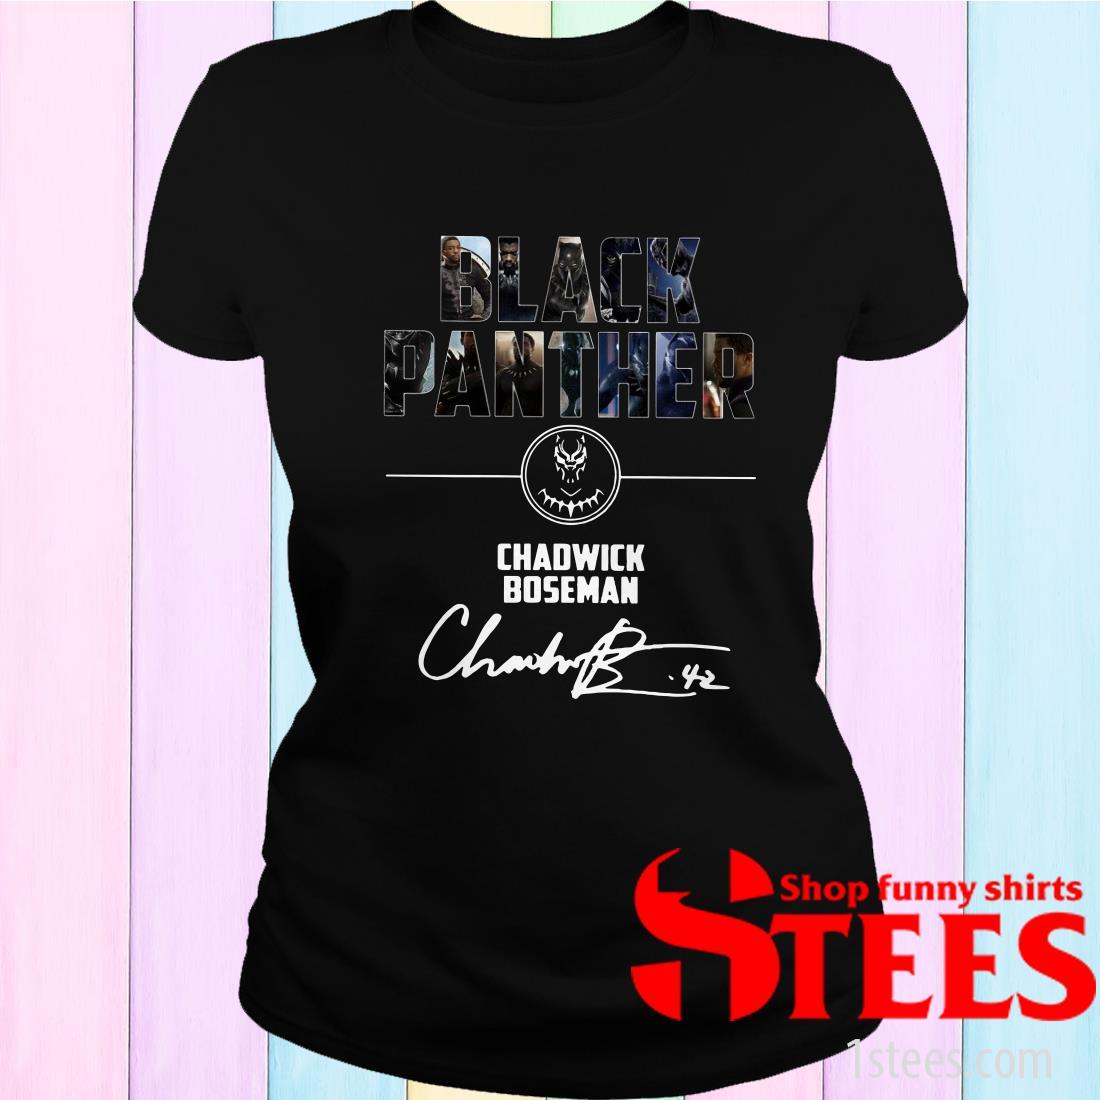 Black Panther Chadwick Boseman Signature Women's T-Shirt